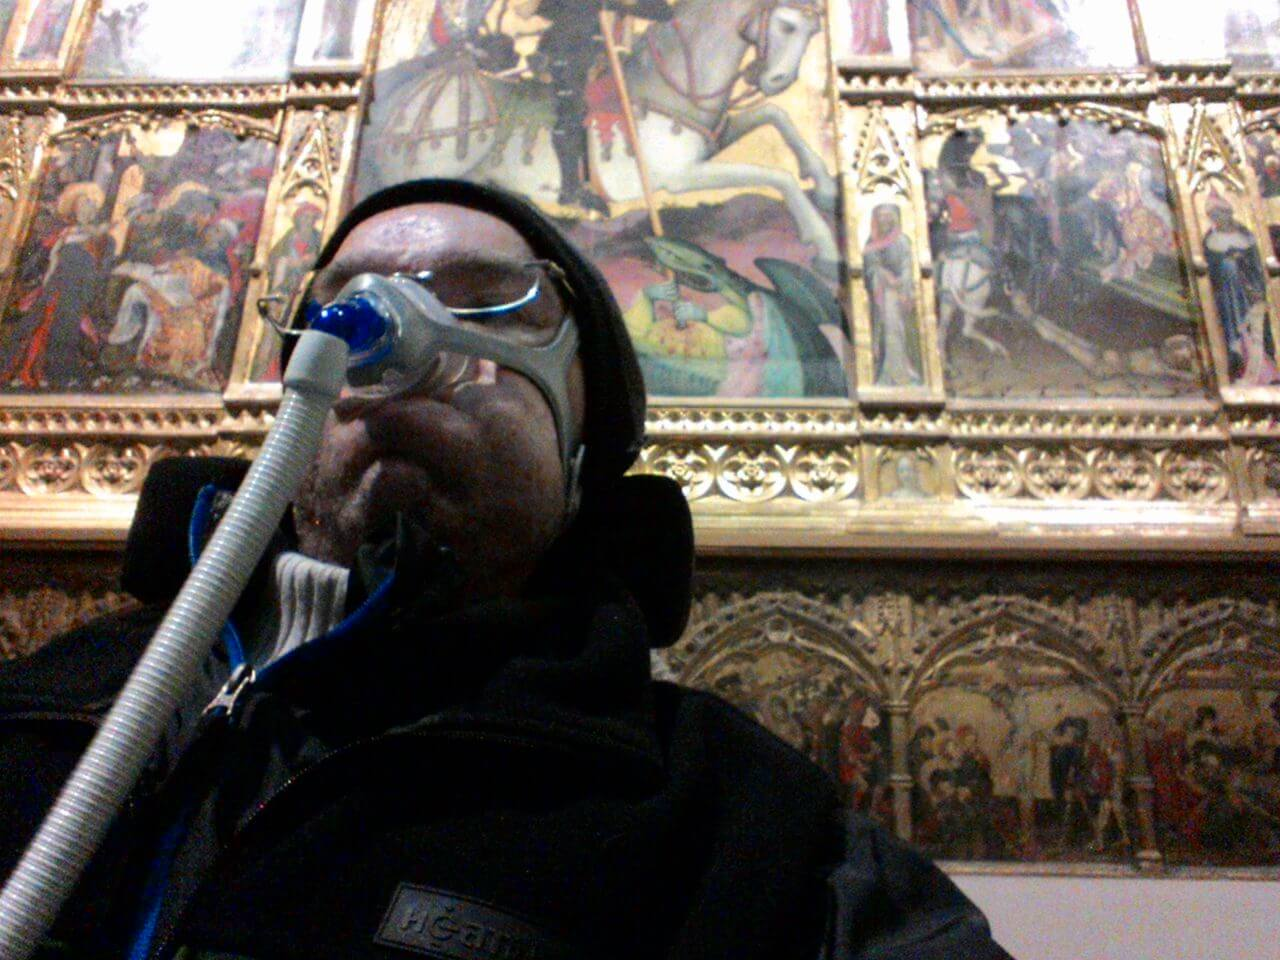 Daniel in victoria and albert museum Royal Brompton - Day 5